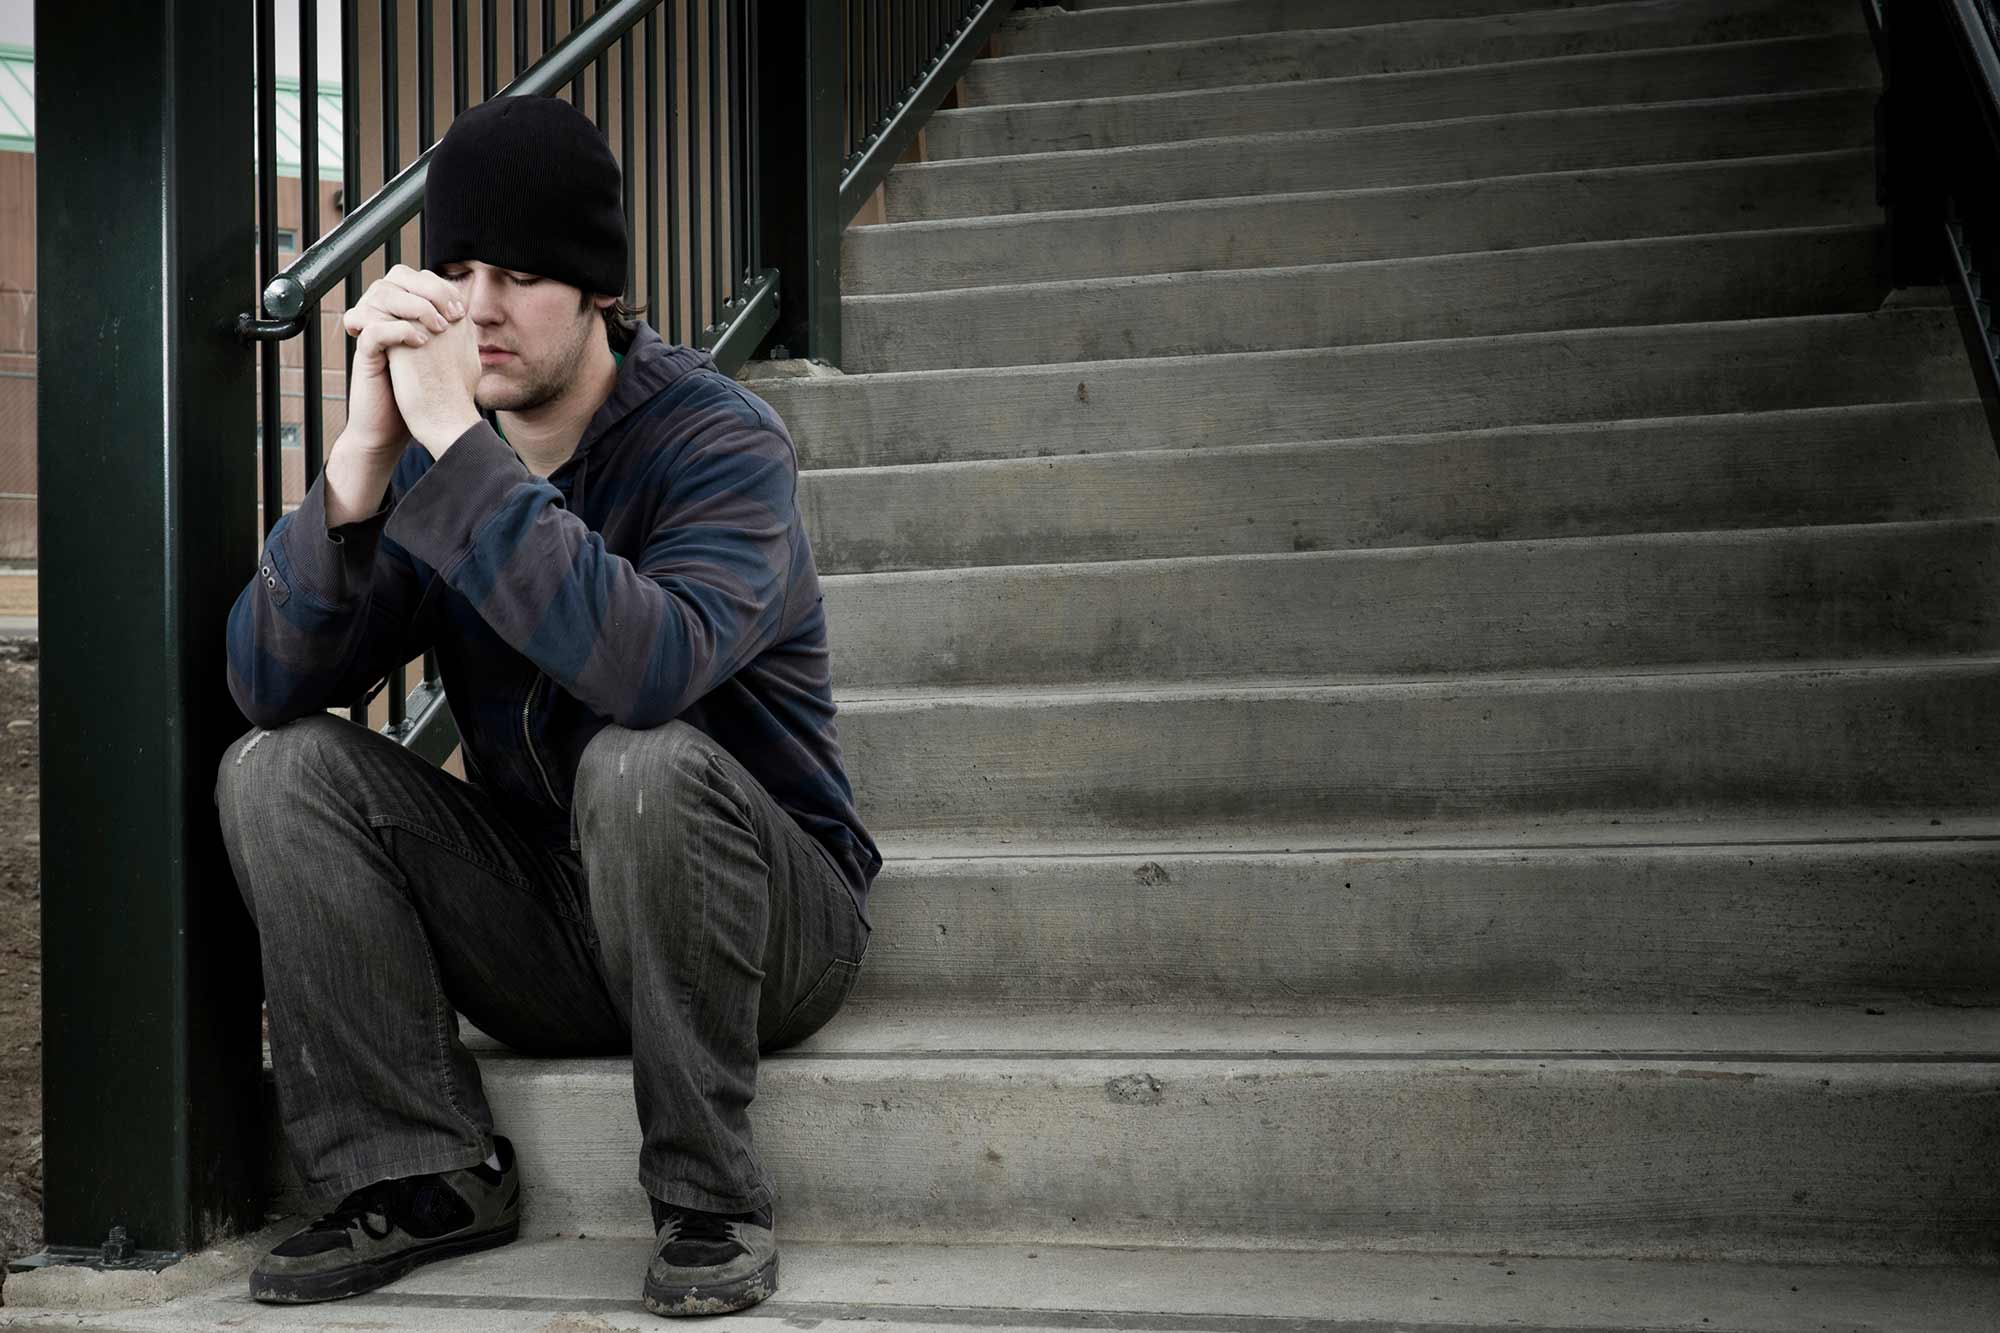 A man sits on a concrete staircase and prays